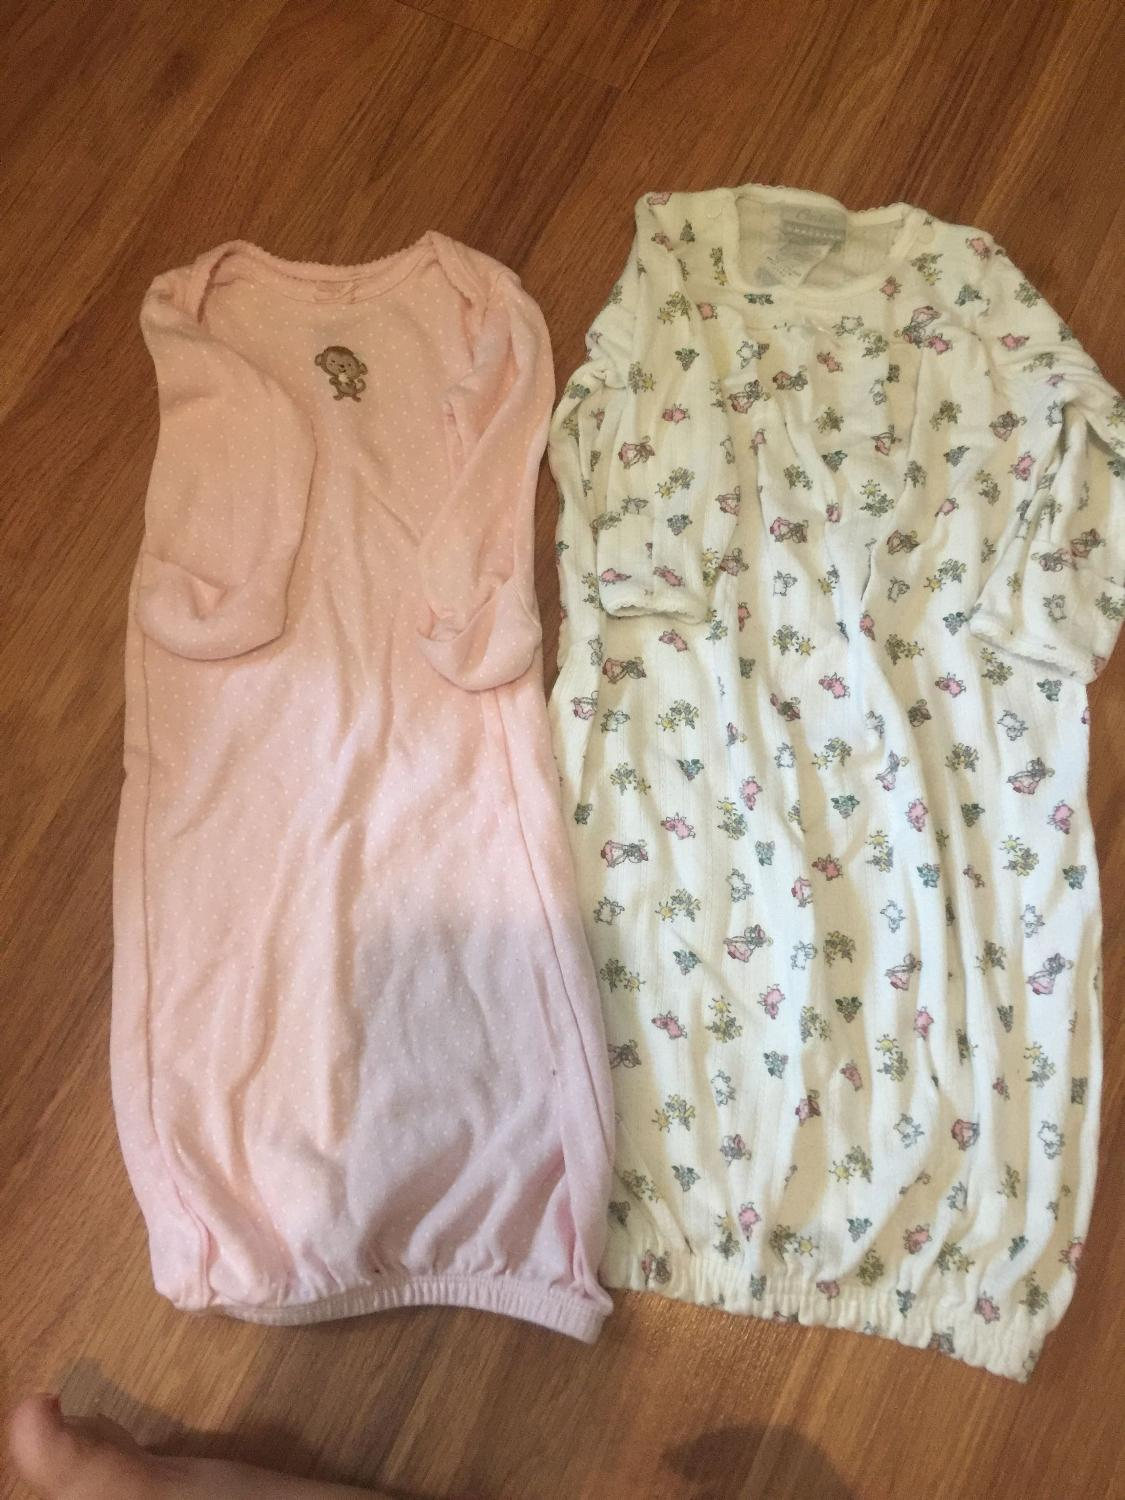 Find more 2 Sleeper Gowns for sale at up to 90% off